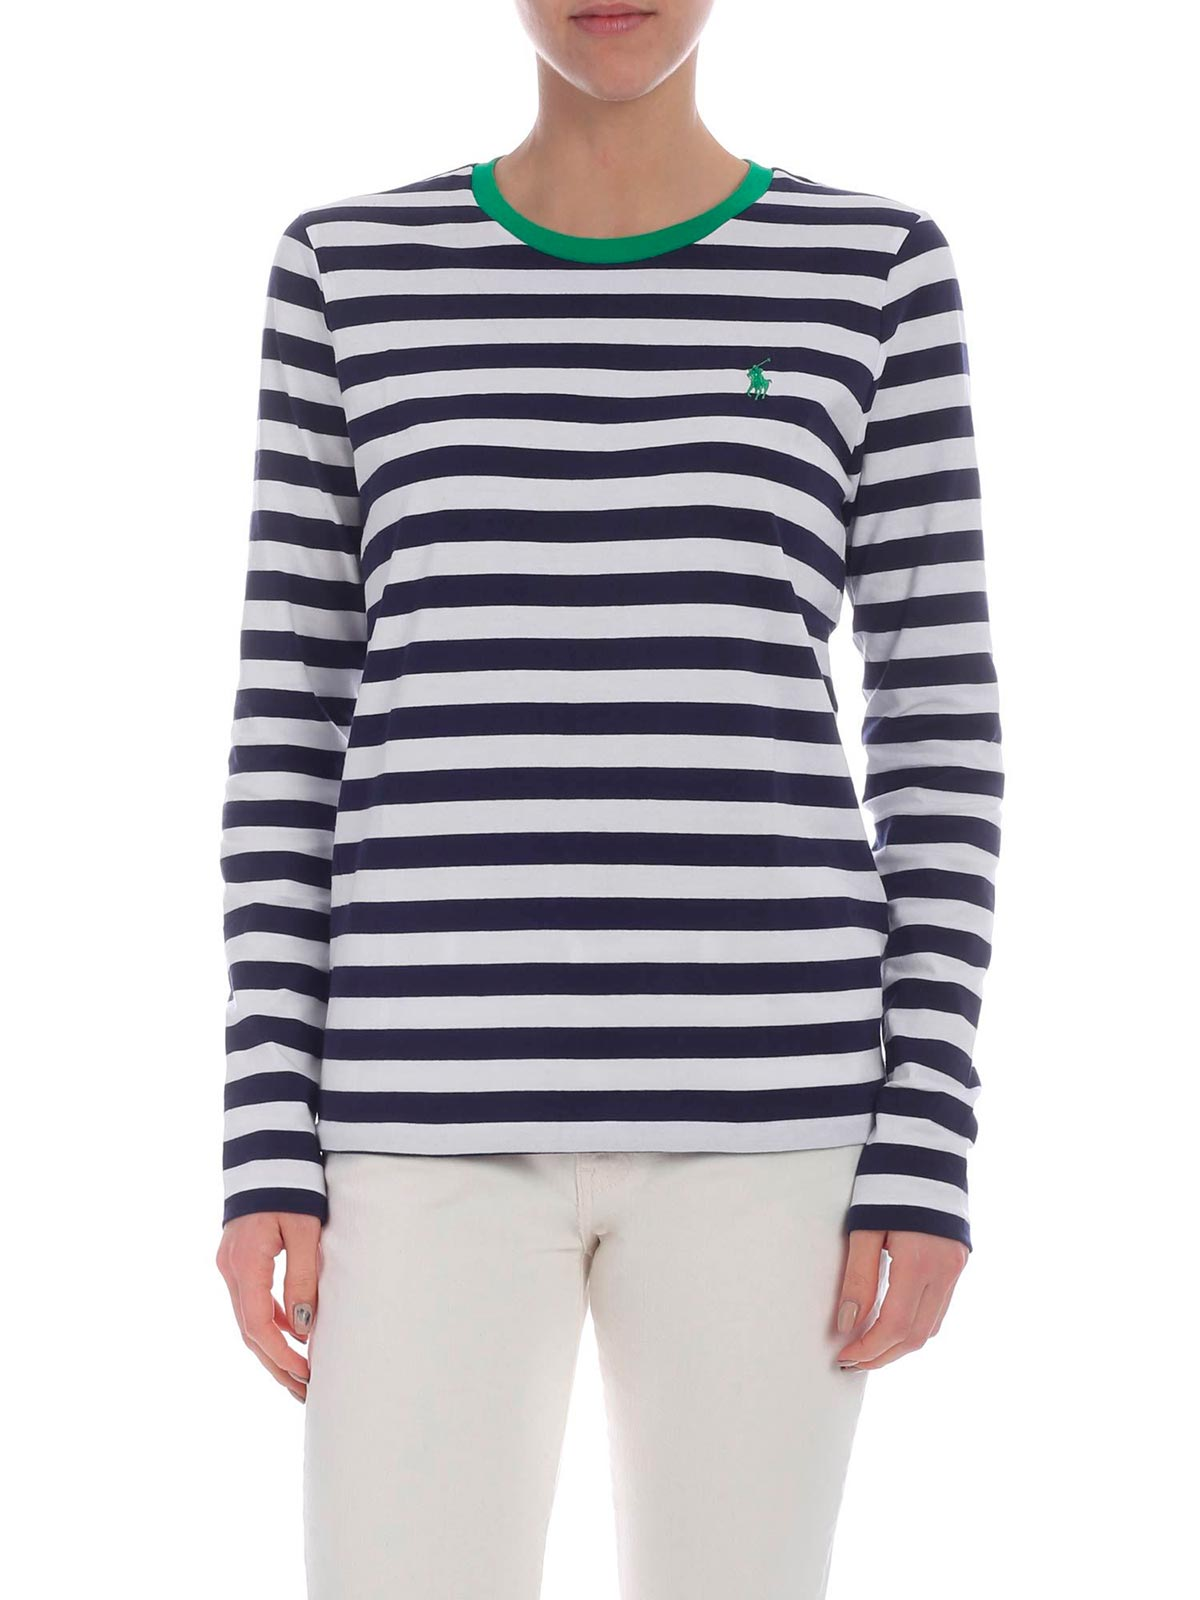 Lauren by Ralph Lauren Womans White And Navy Stripe Sweater~ NWT